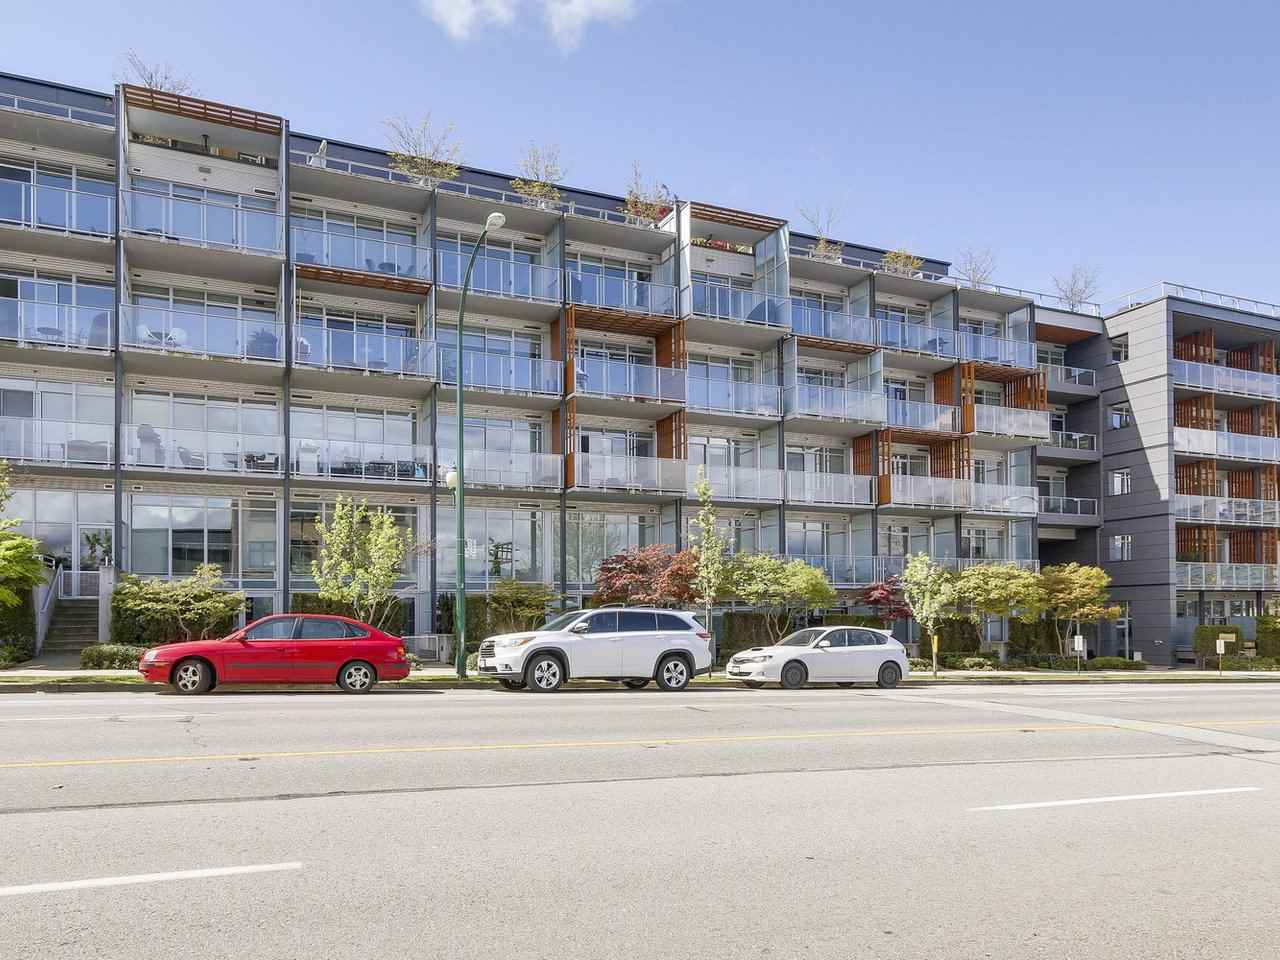 "Main Photo: 522 256 E 2ND Avenue in Vancouver: Mount Pleasant VE Condo for sale in ""JACOBSEN"" (Vancouver East)  : MLS®# R2161219"